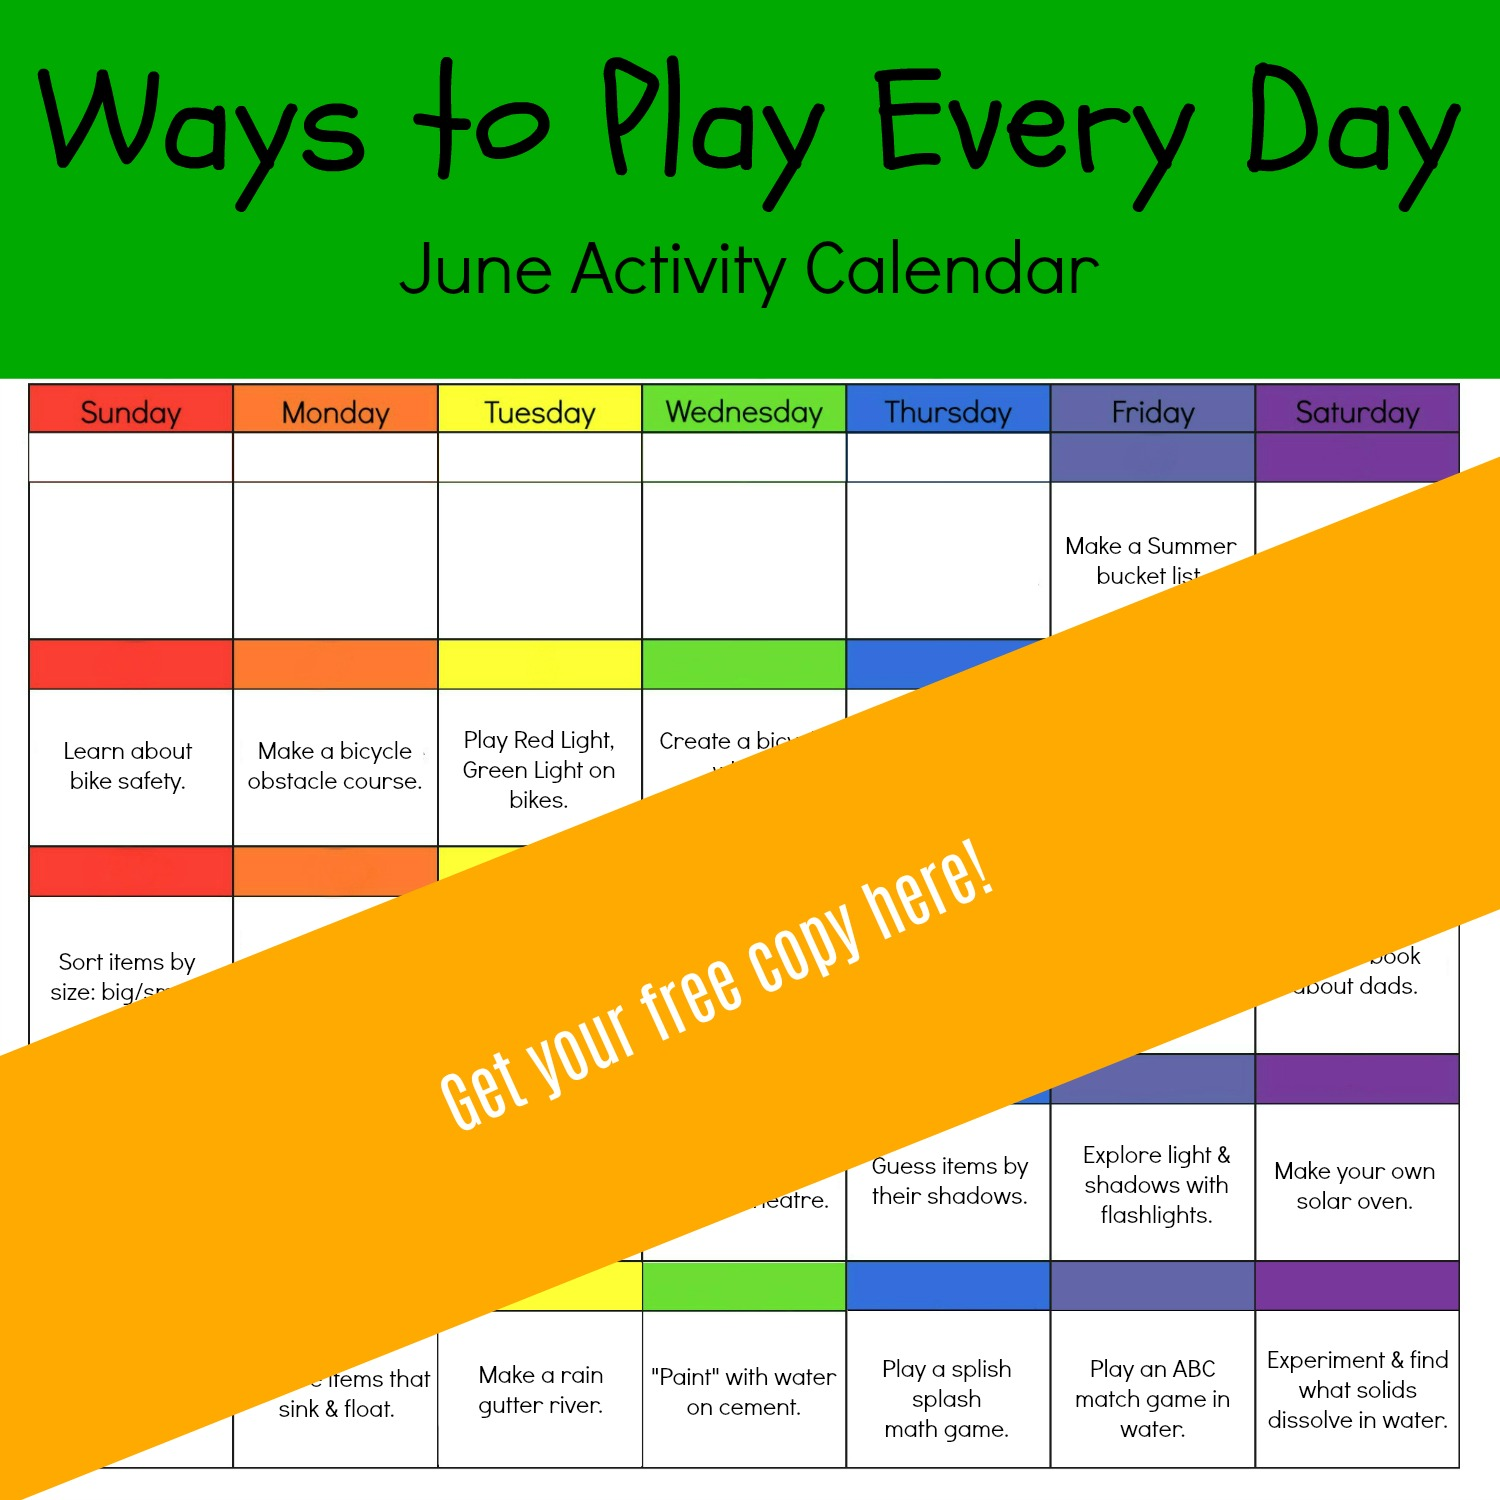 Ways To Play Every Day June Activity Calendar For Preschoolers The Preschool Toolbox Blog